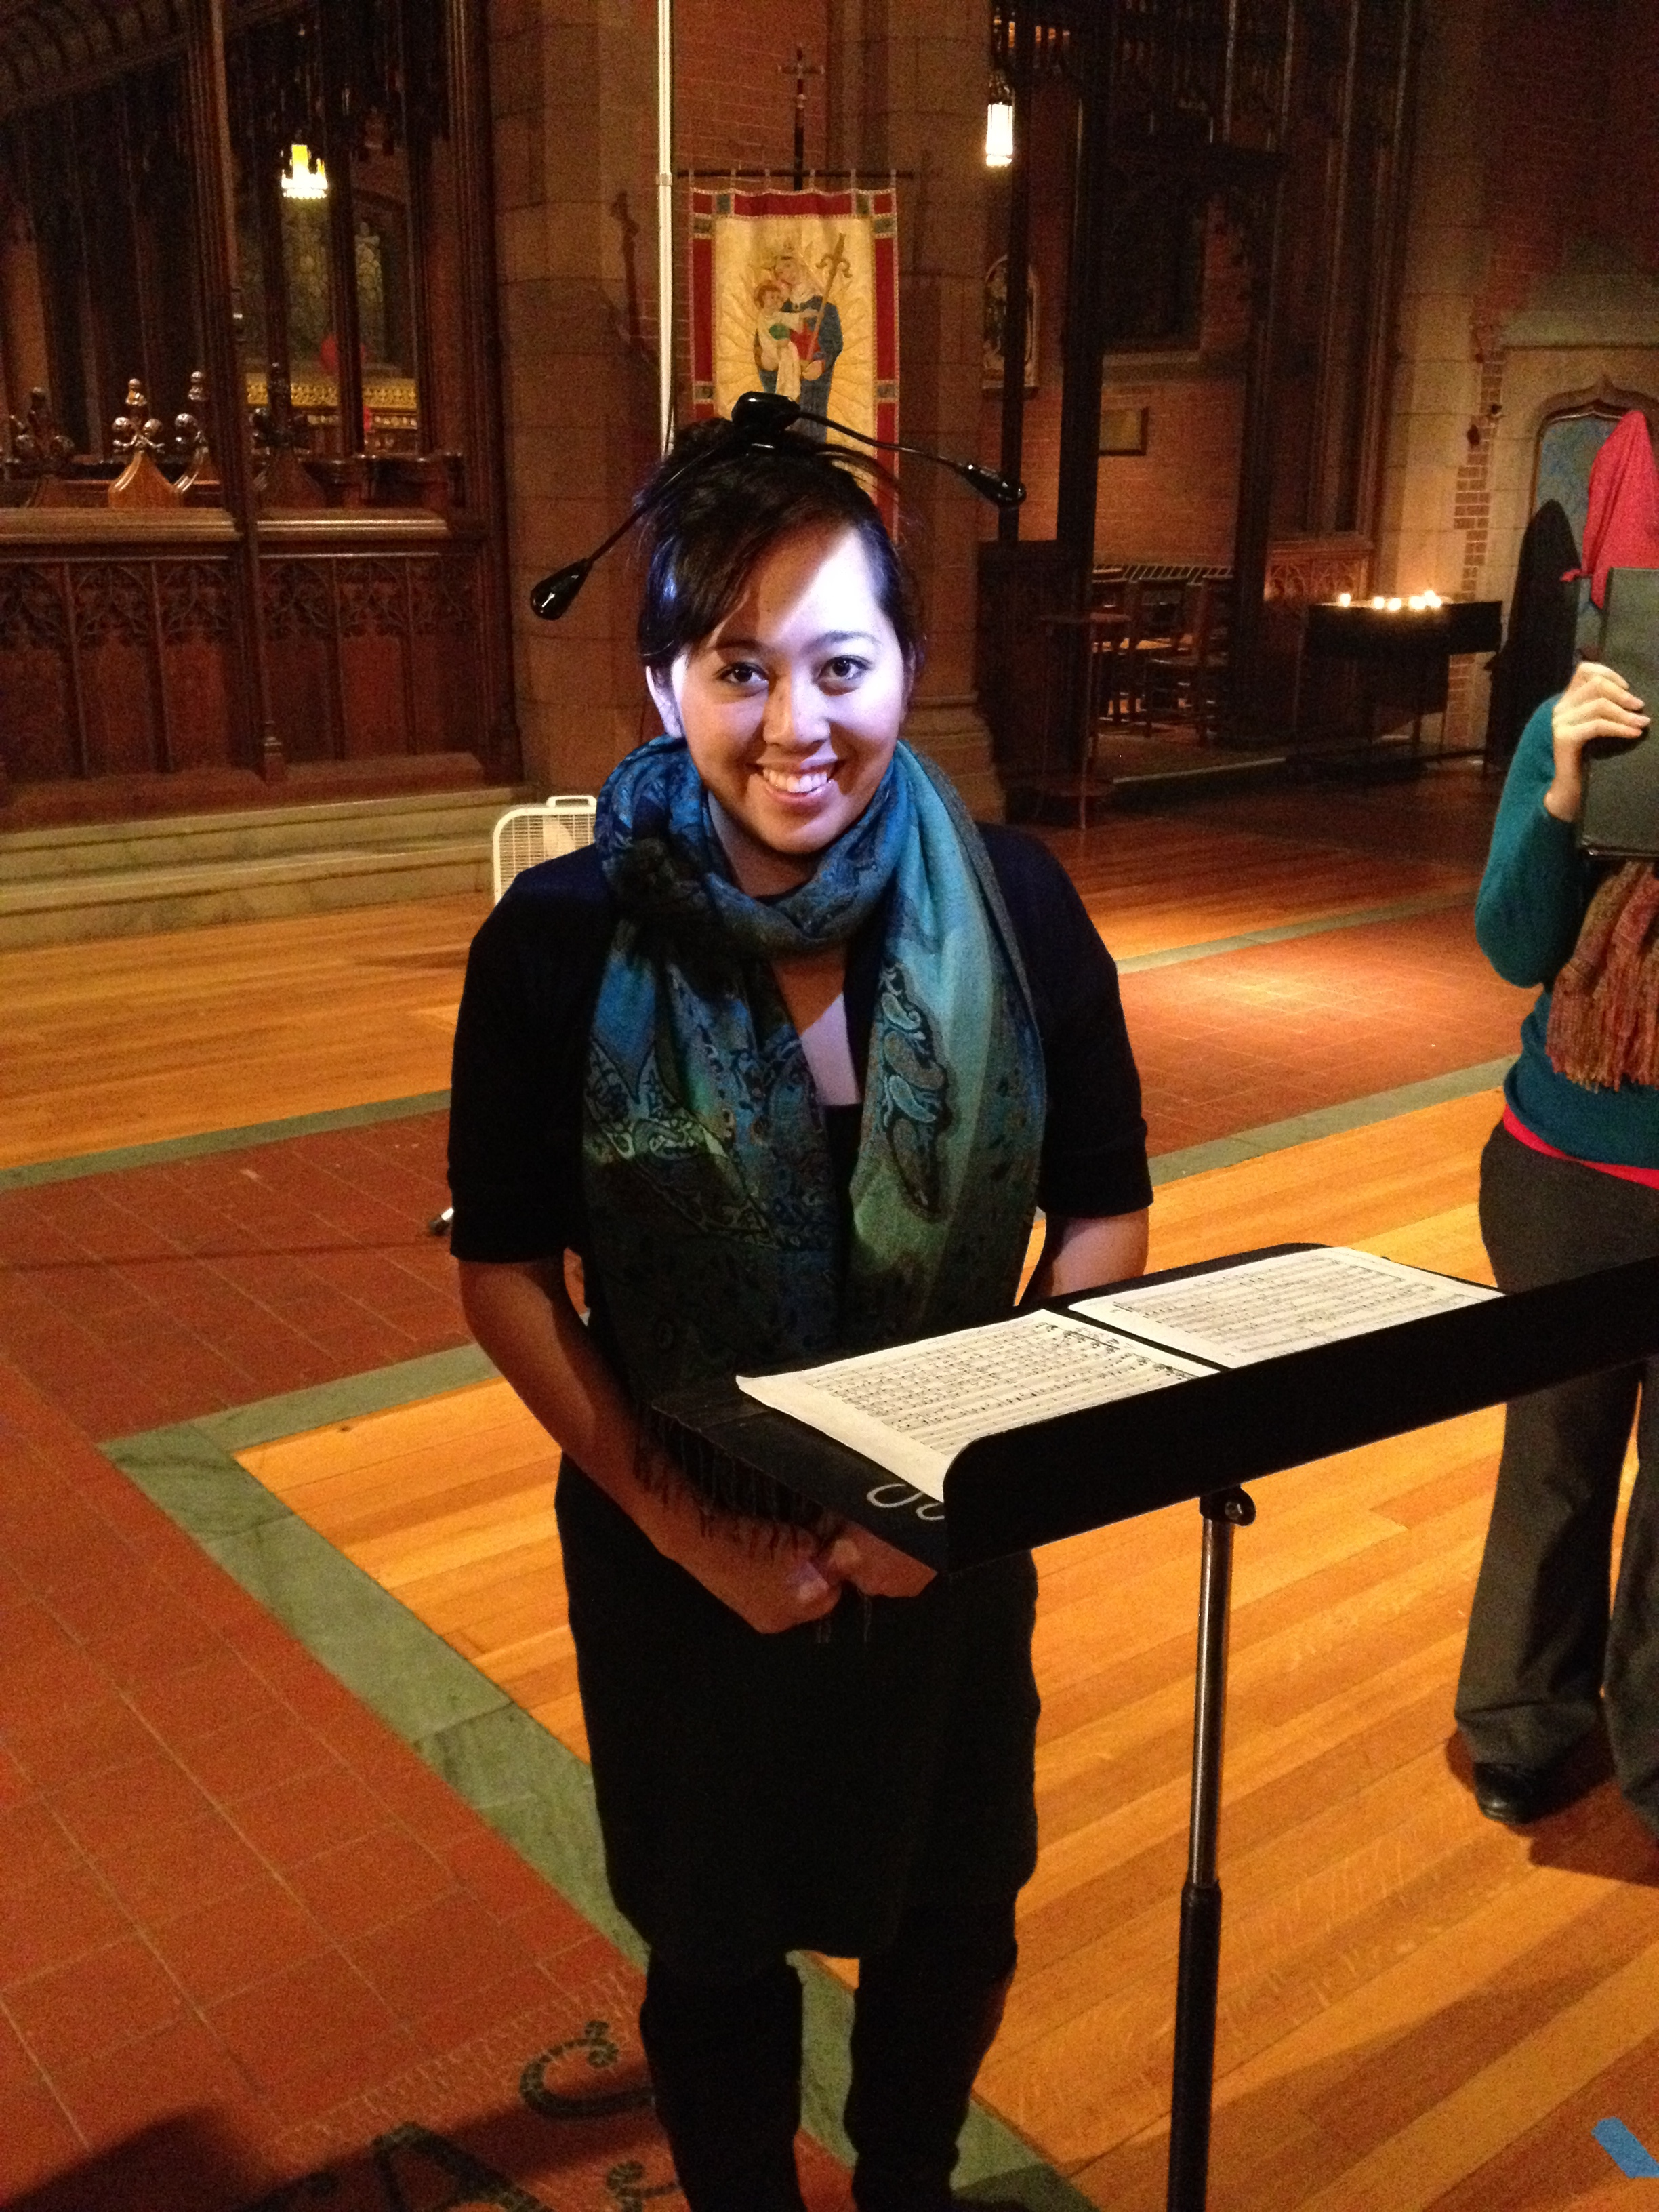 Arianne Abela sheds additional light on her music with some cleverly-placed music stand lights in Christ Church, New Haven